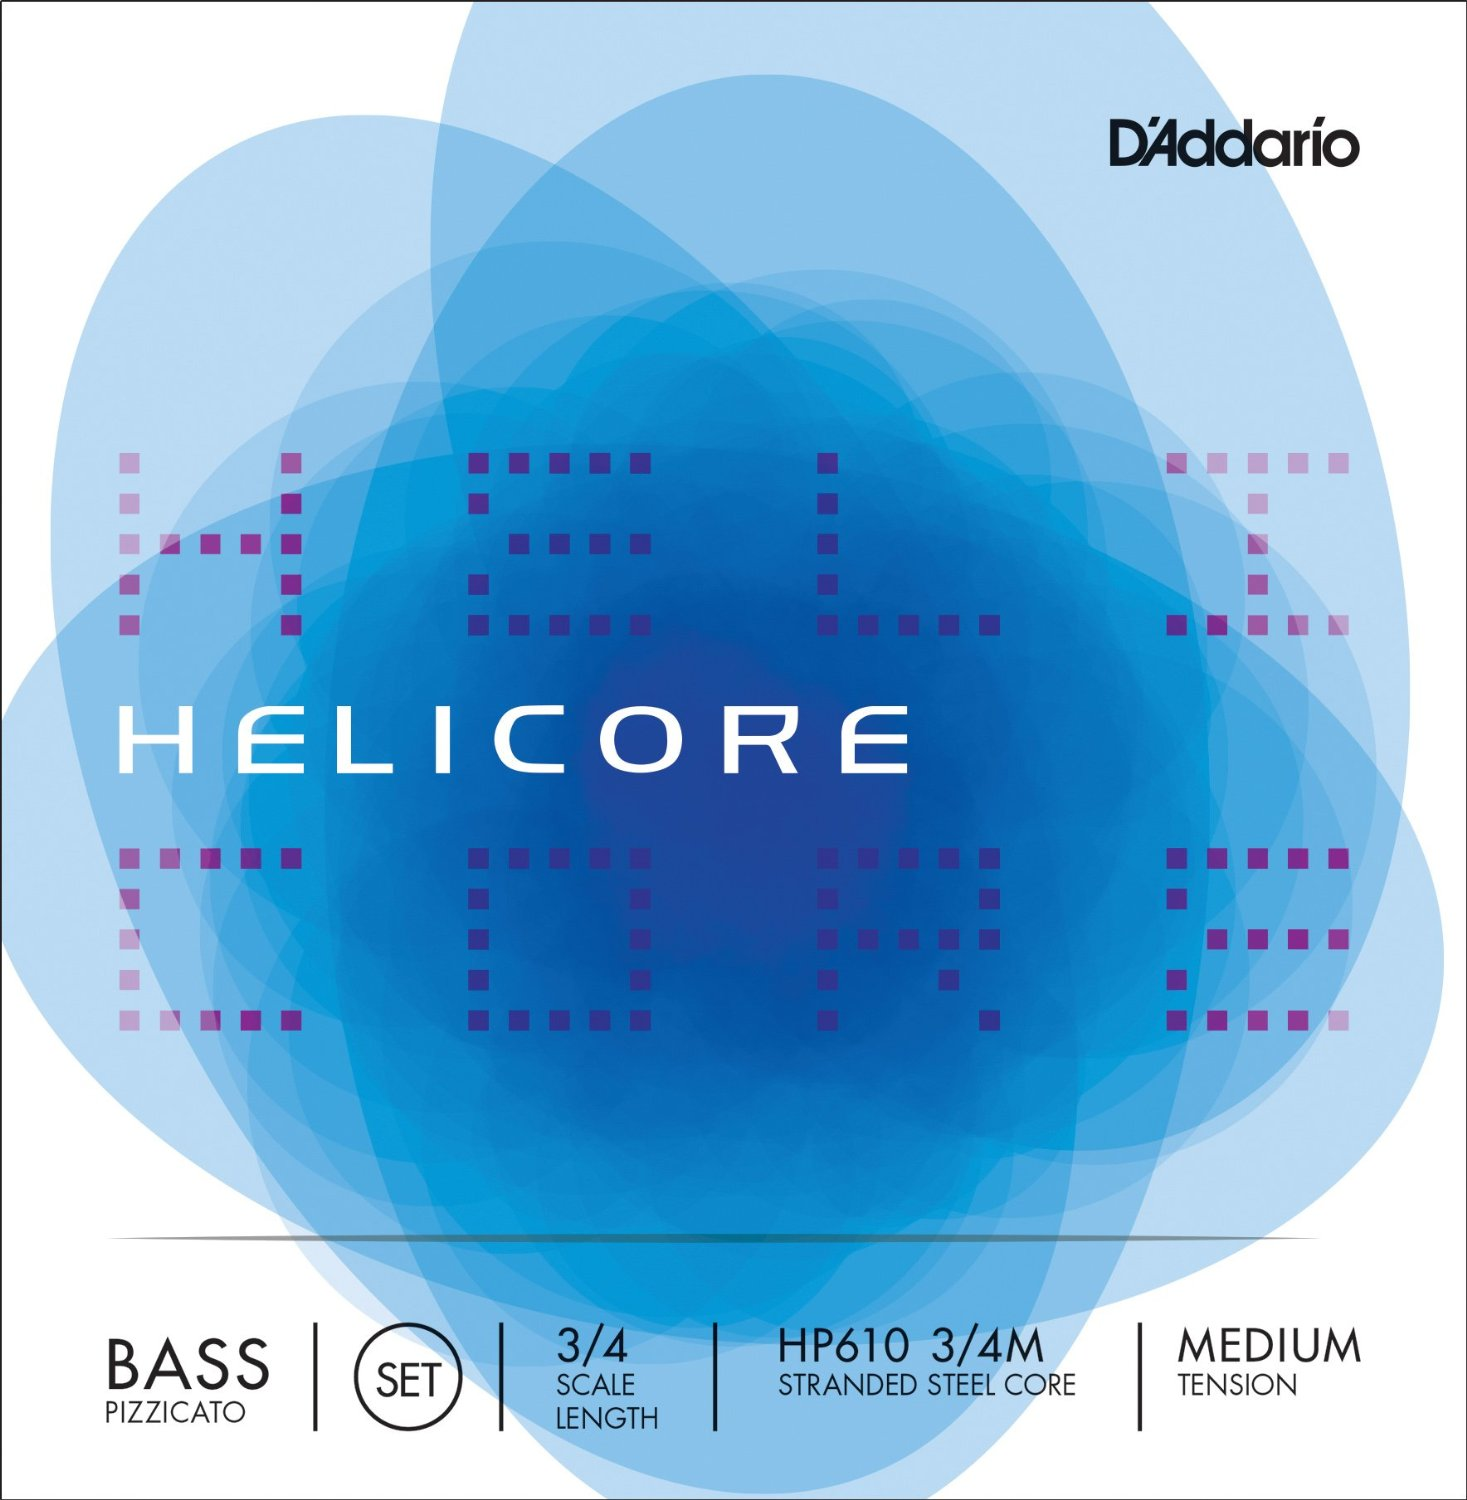 D'Addario Helicore Pizzicato Double Bass Strings for sale at Bridgewood and Neitzert London